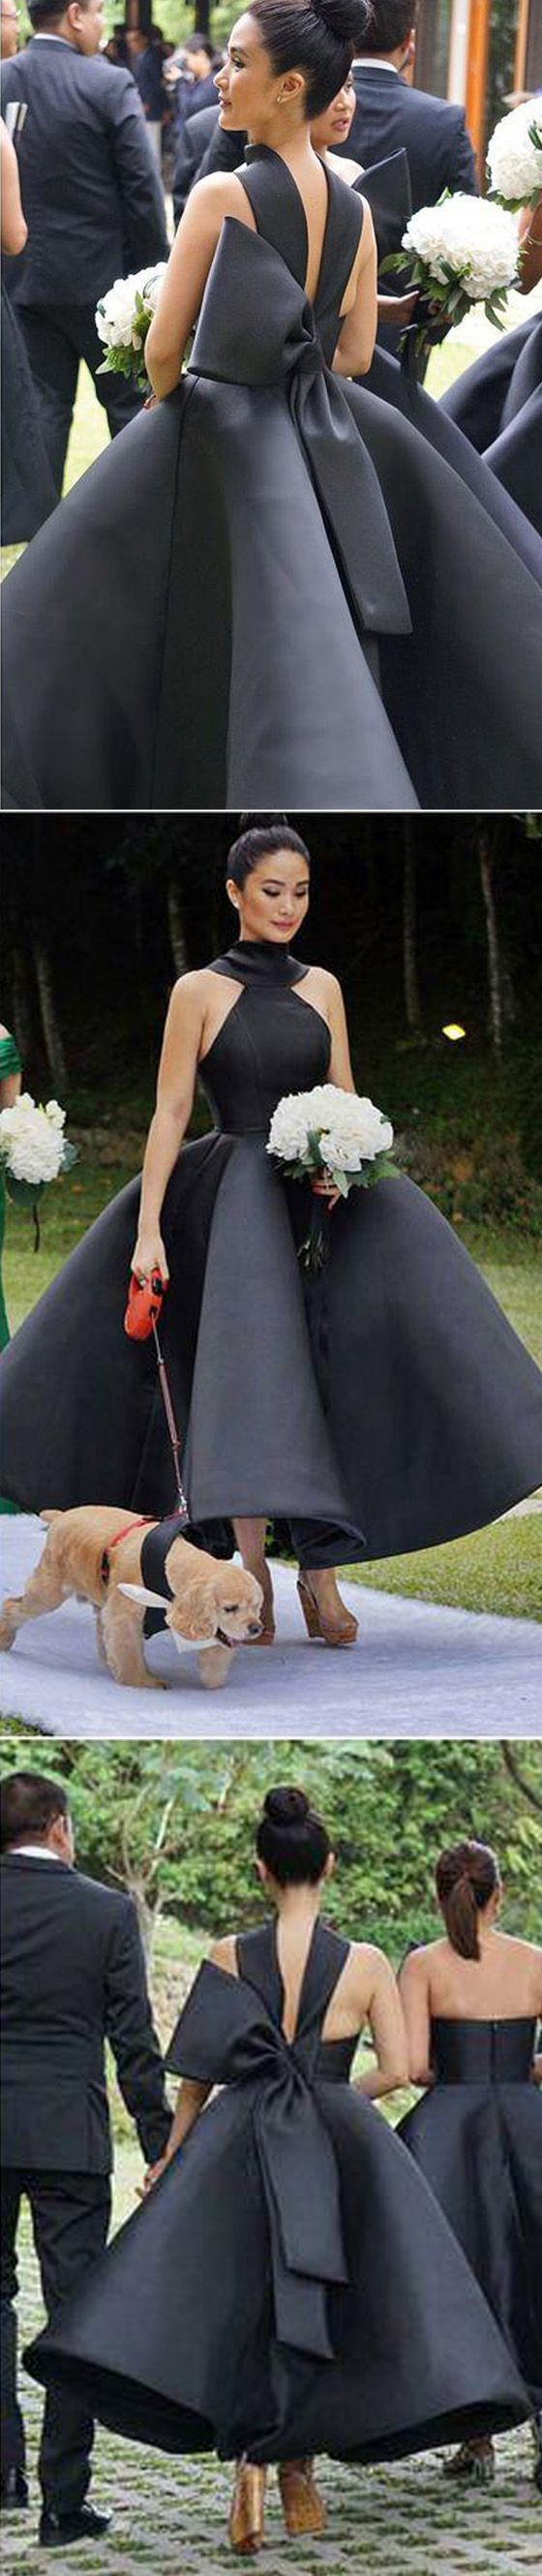 Unique New Arrival Black Ankle Length Wedding Party Bridesmaid Dresses with Bow, WG445 #bridesmaidsdress #weddingpartydress #bridesmaids